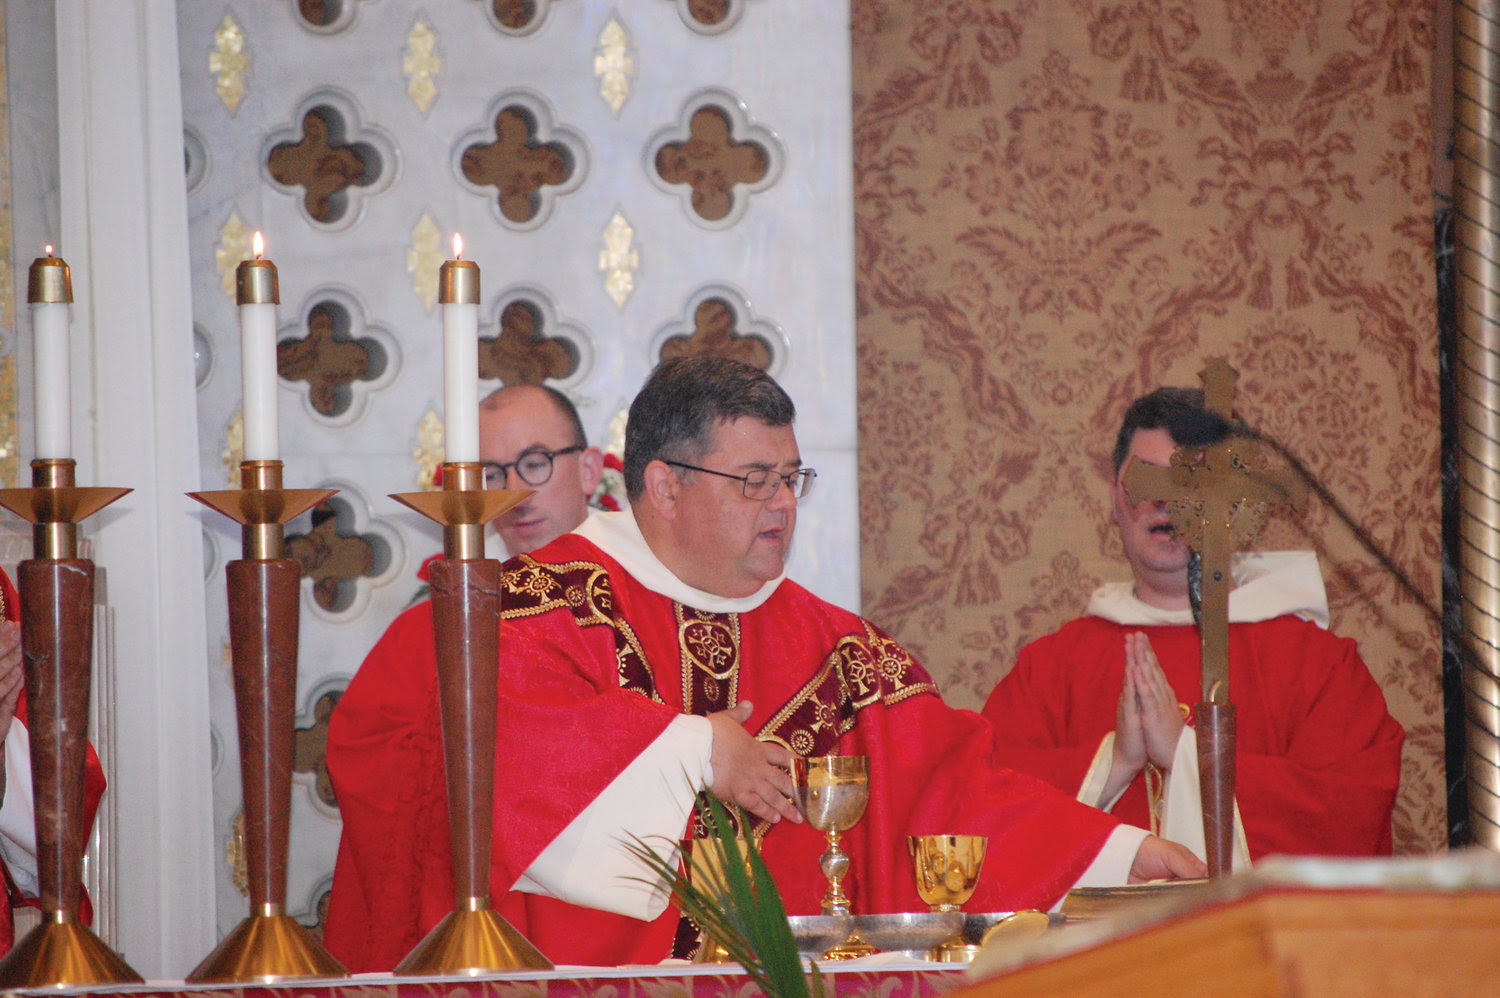 Father James Sullivan, OP, celebrates Mass at the Feast of Pentecost at St. Pius V Church.